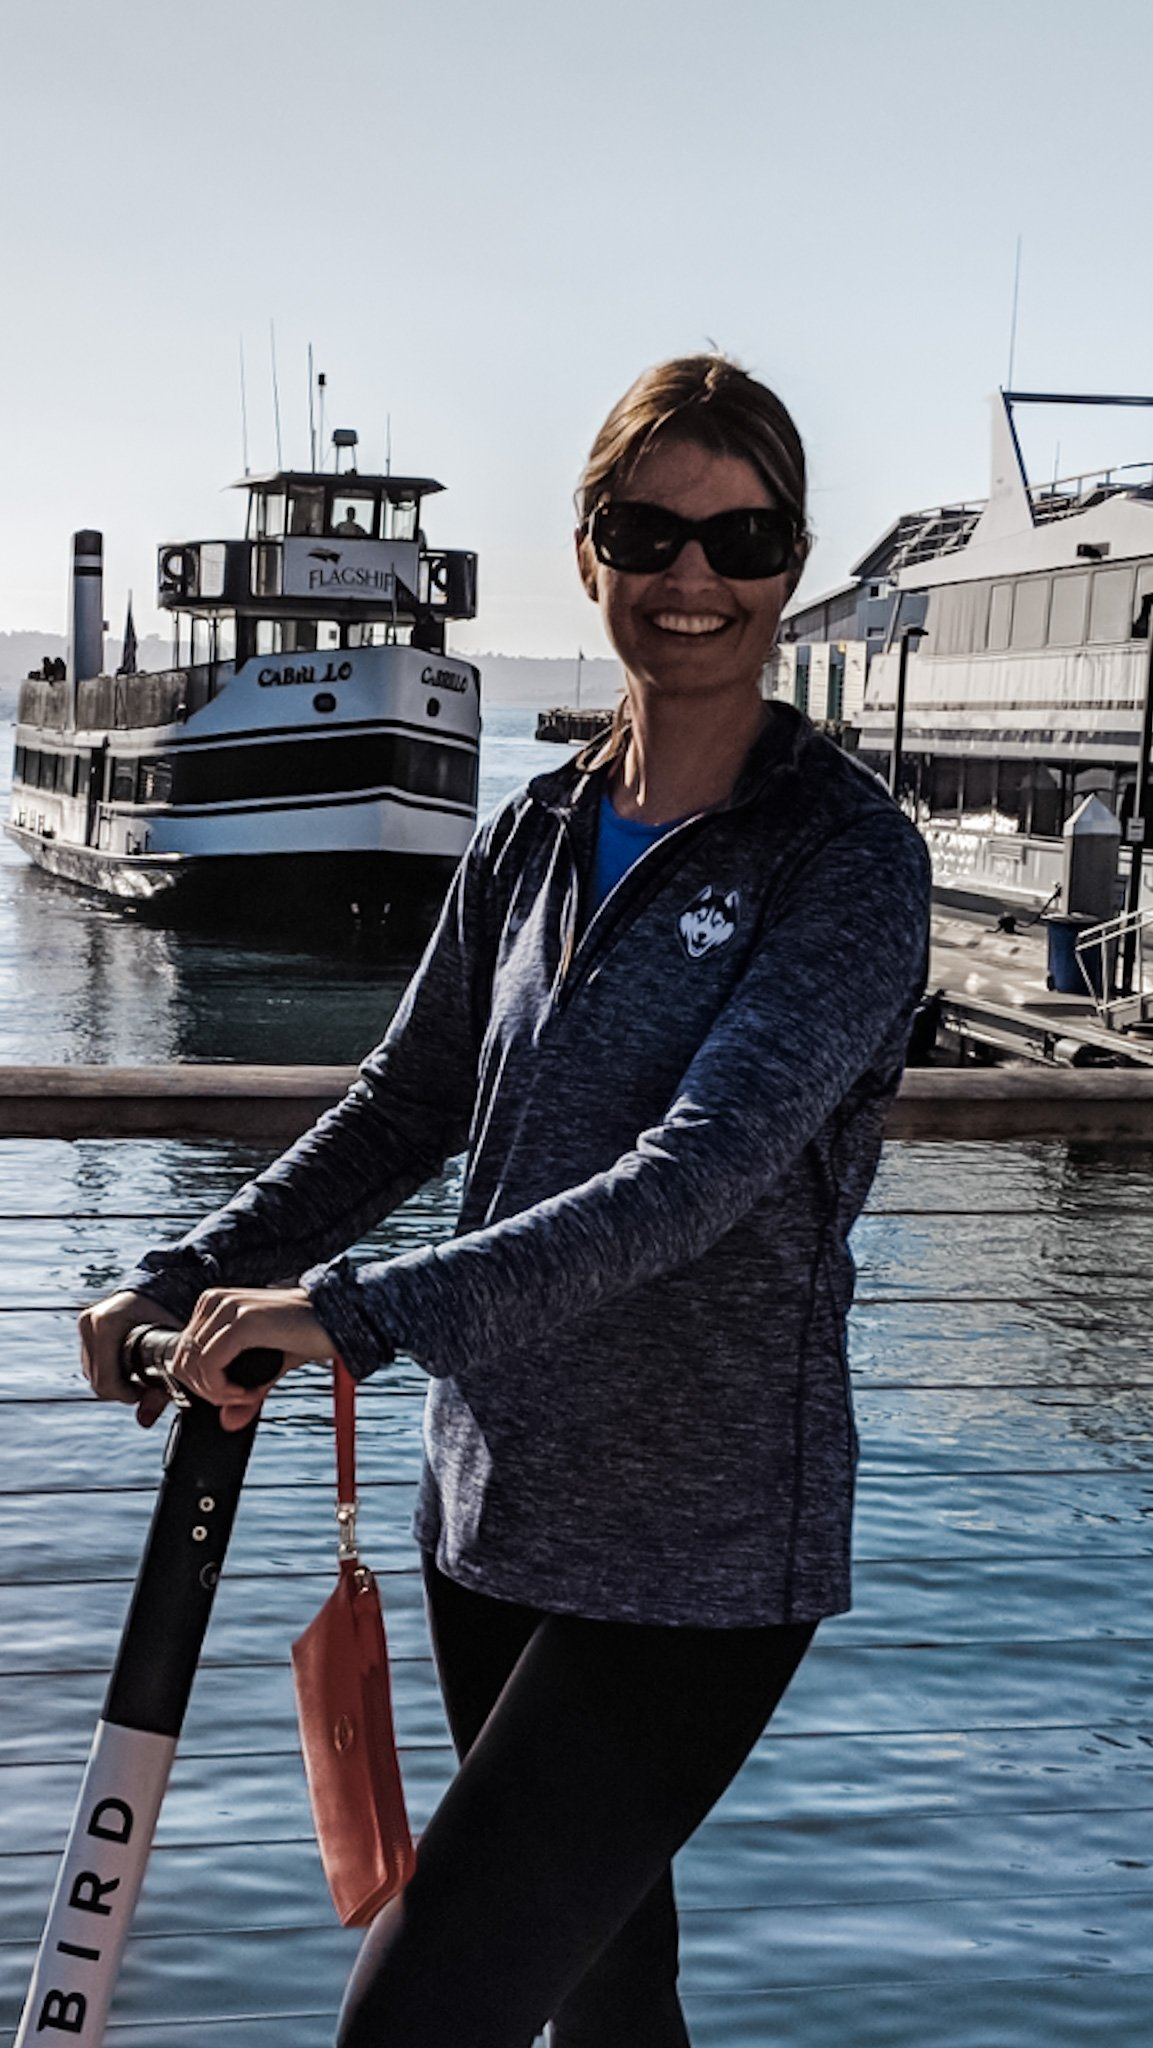 Every road trip to southern California should include riding scooters on the San Diego Bay Walk. It was so much fun!